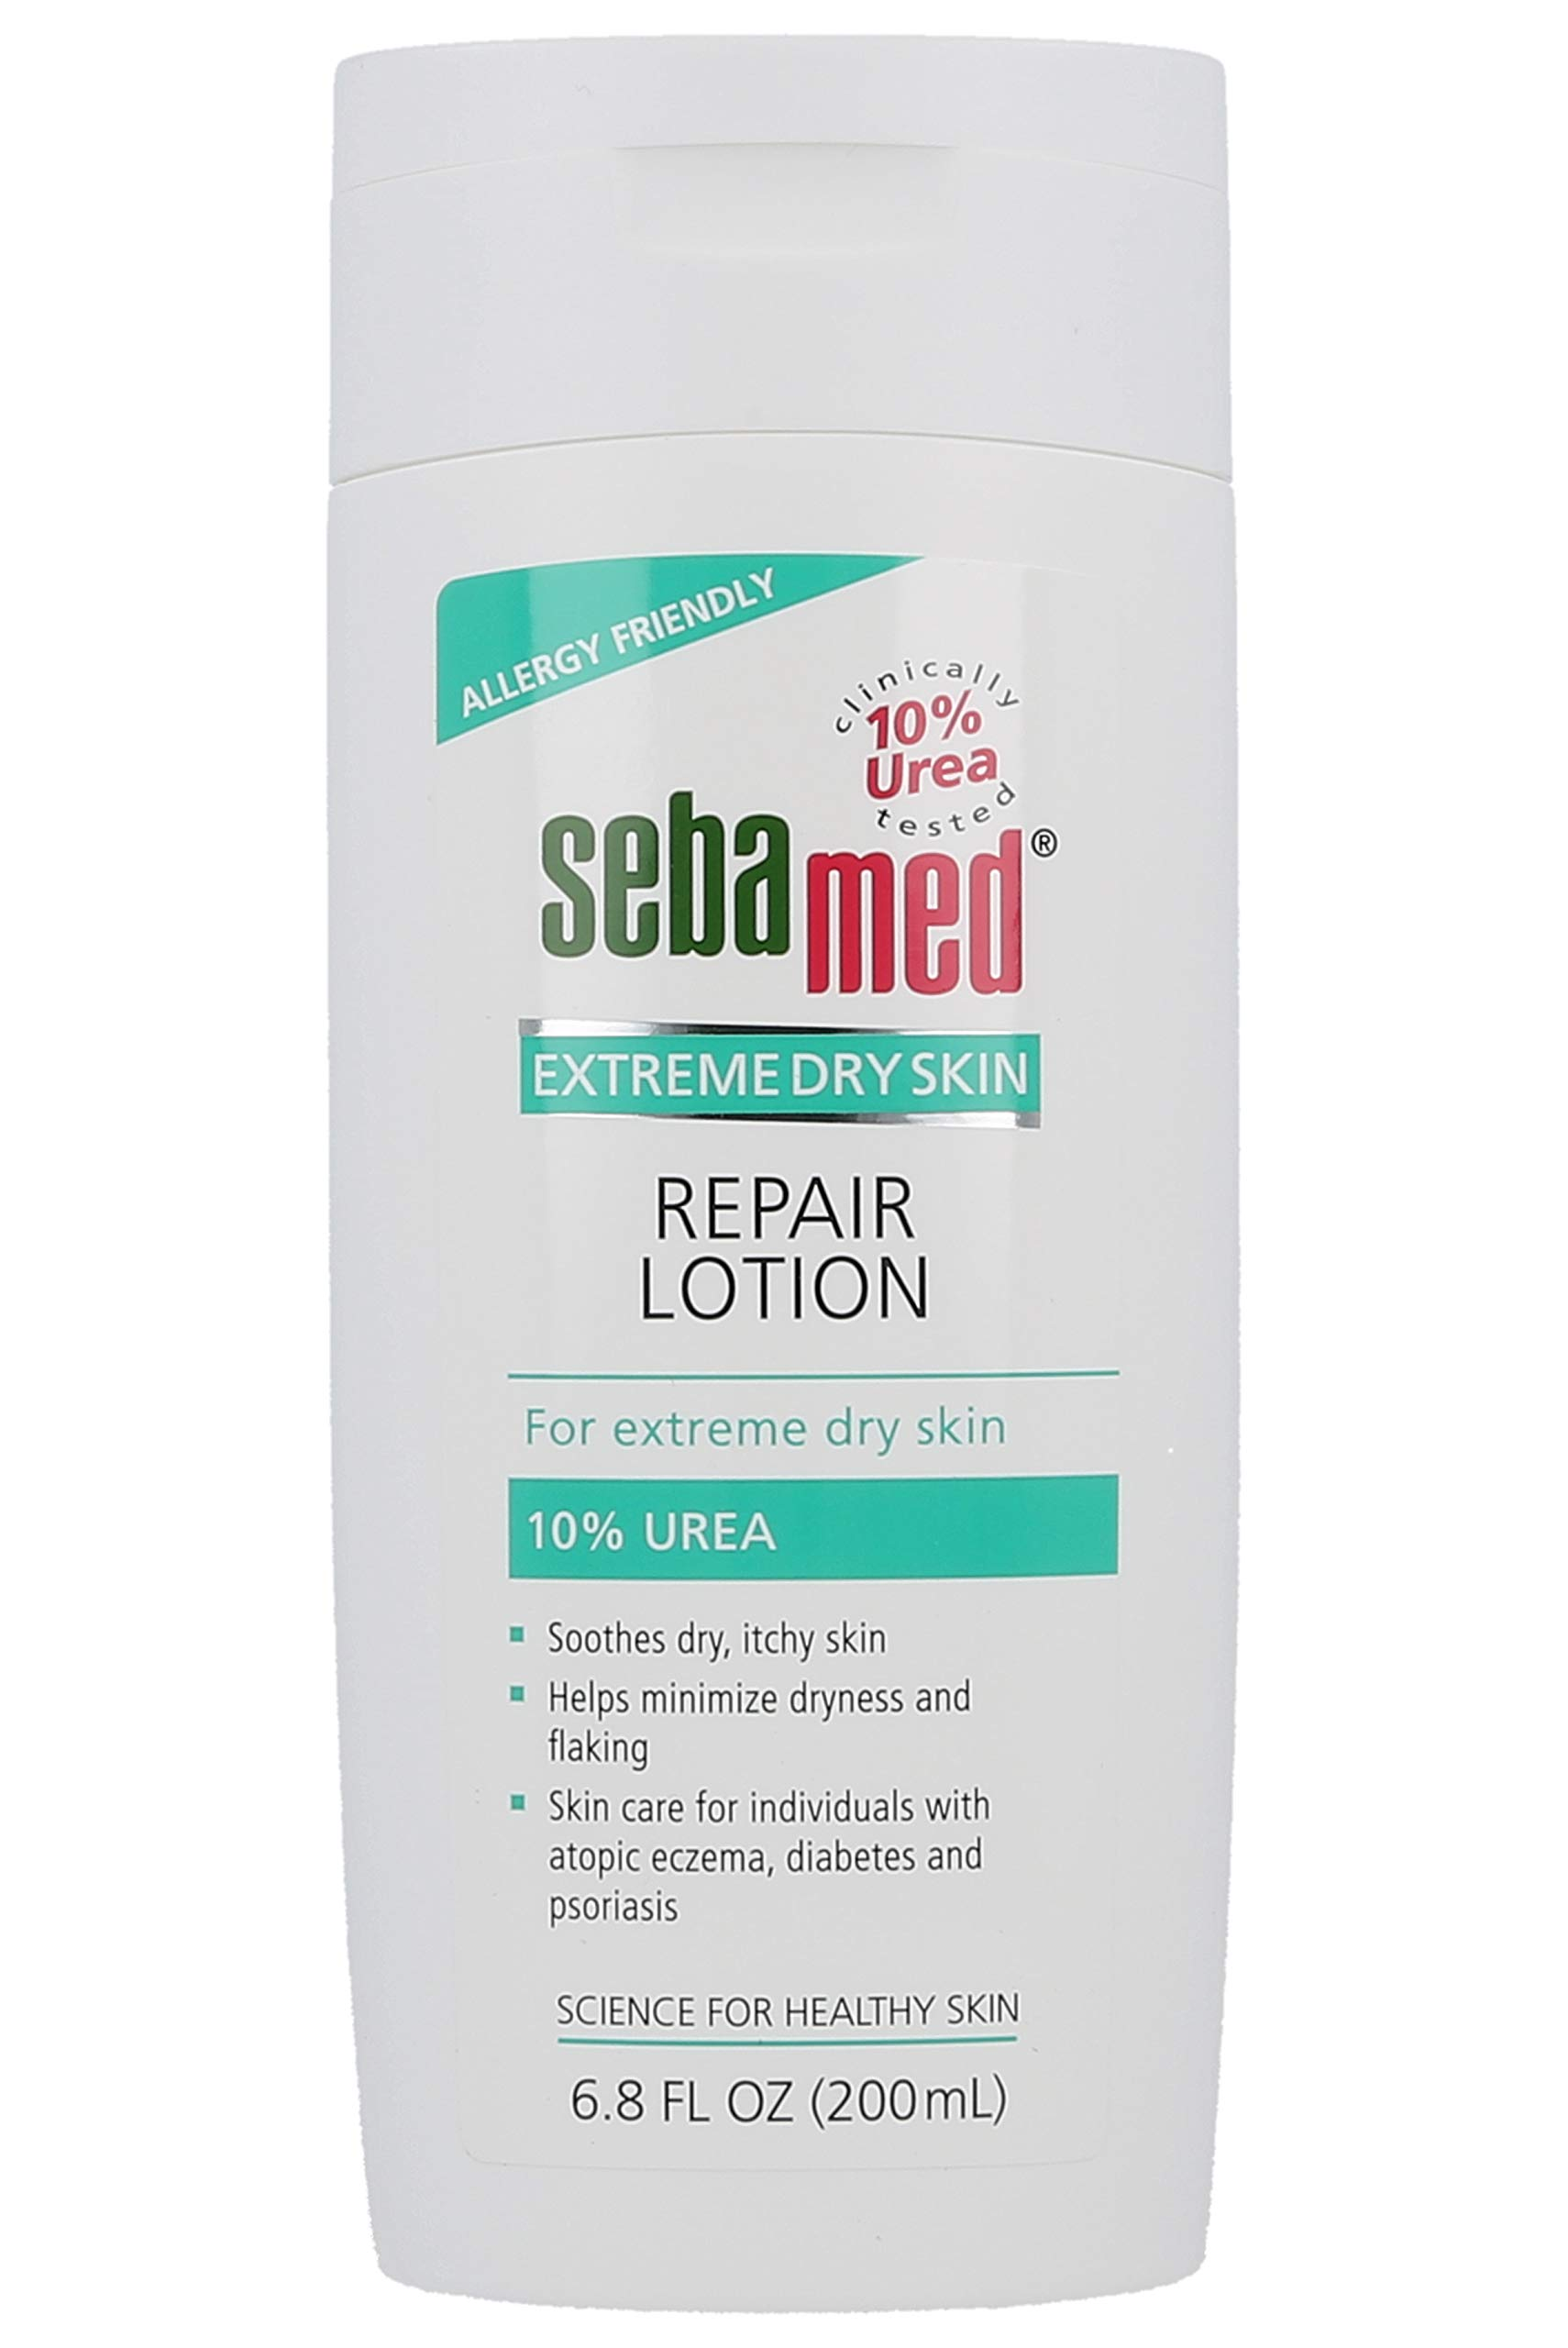 Sebamed Extreme Dry Skin Repair Lotion 10% Urea - Perfect for Eczema Psoriasis Lotion Rough Dry Skin Moisturizer (200mL) by SEBAMED